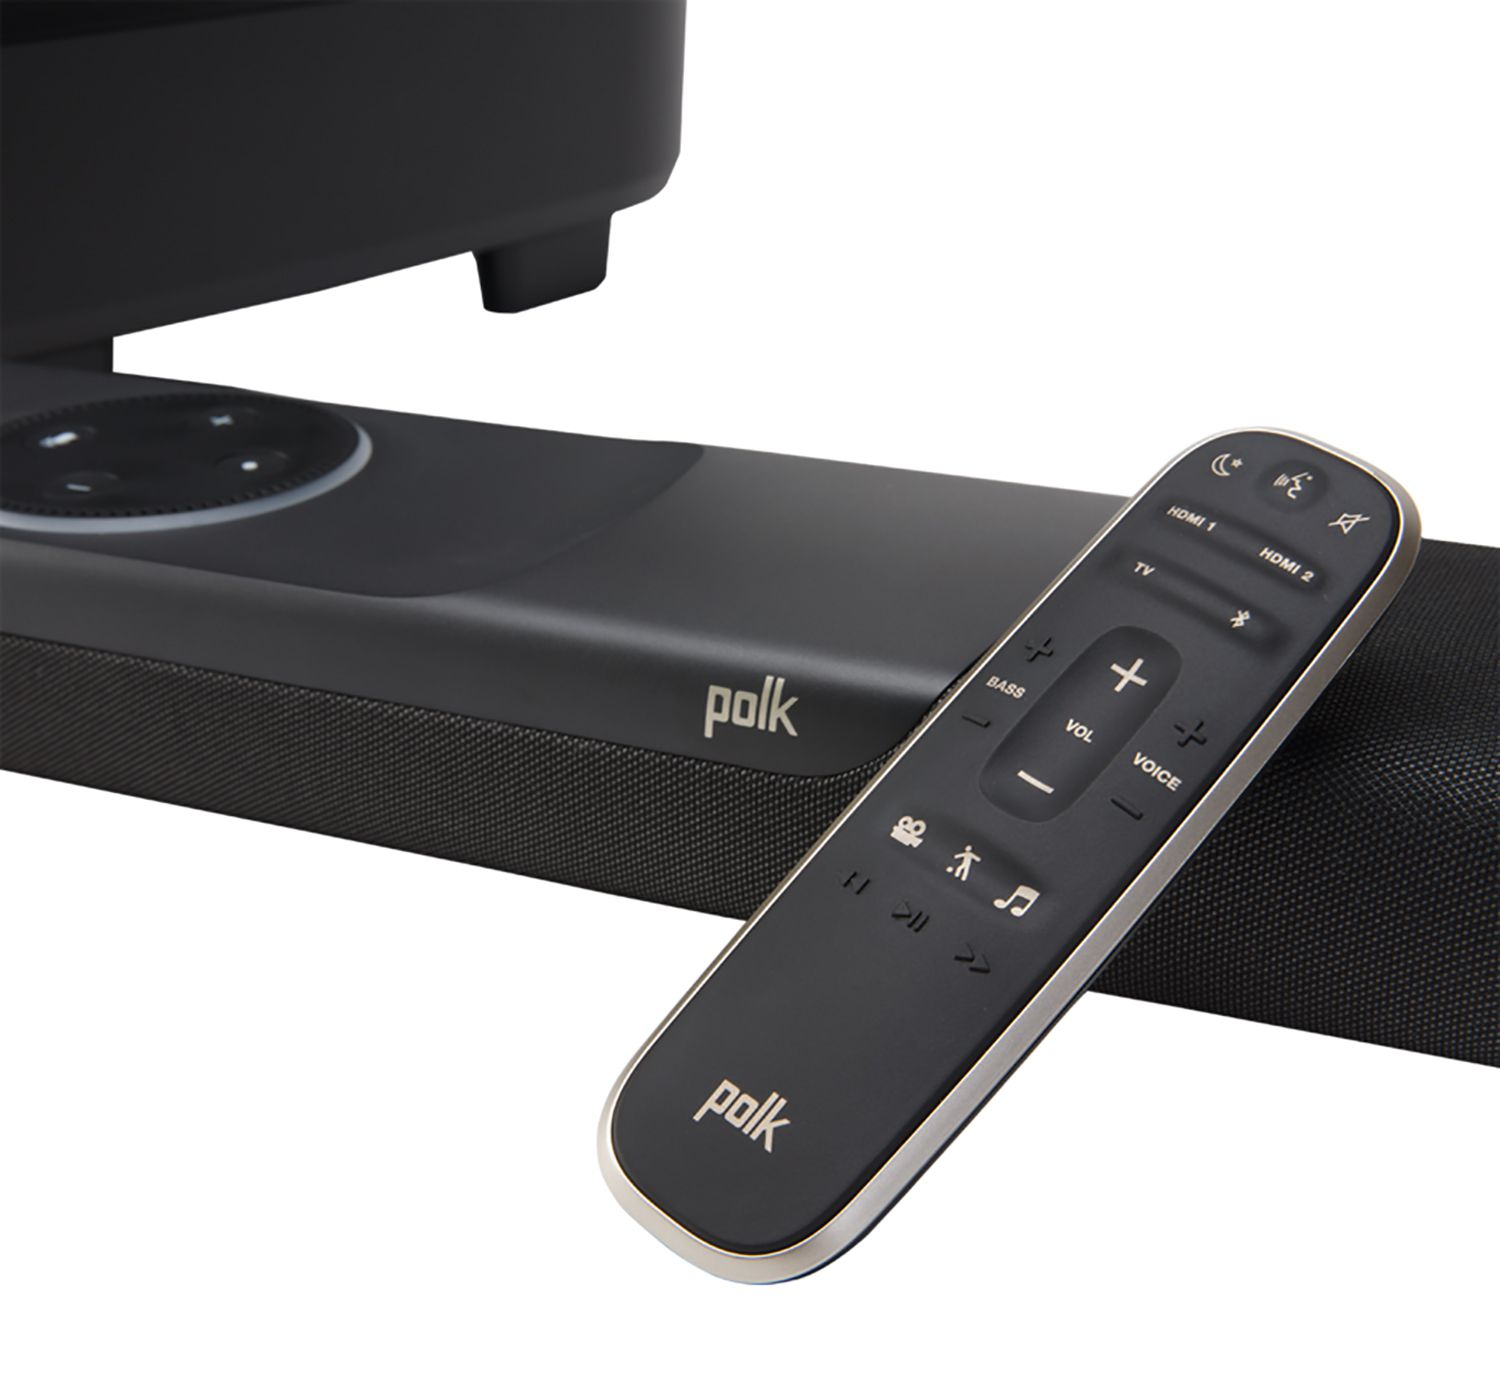 The remote for the Polk Command Bar.